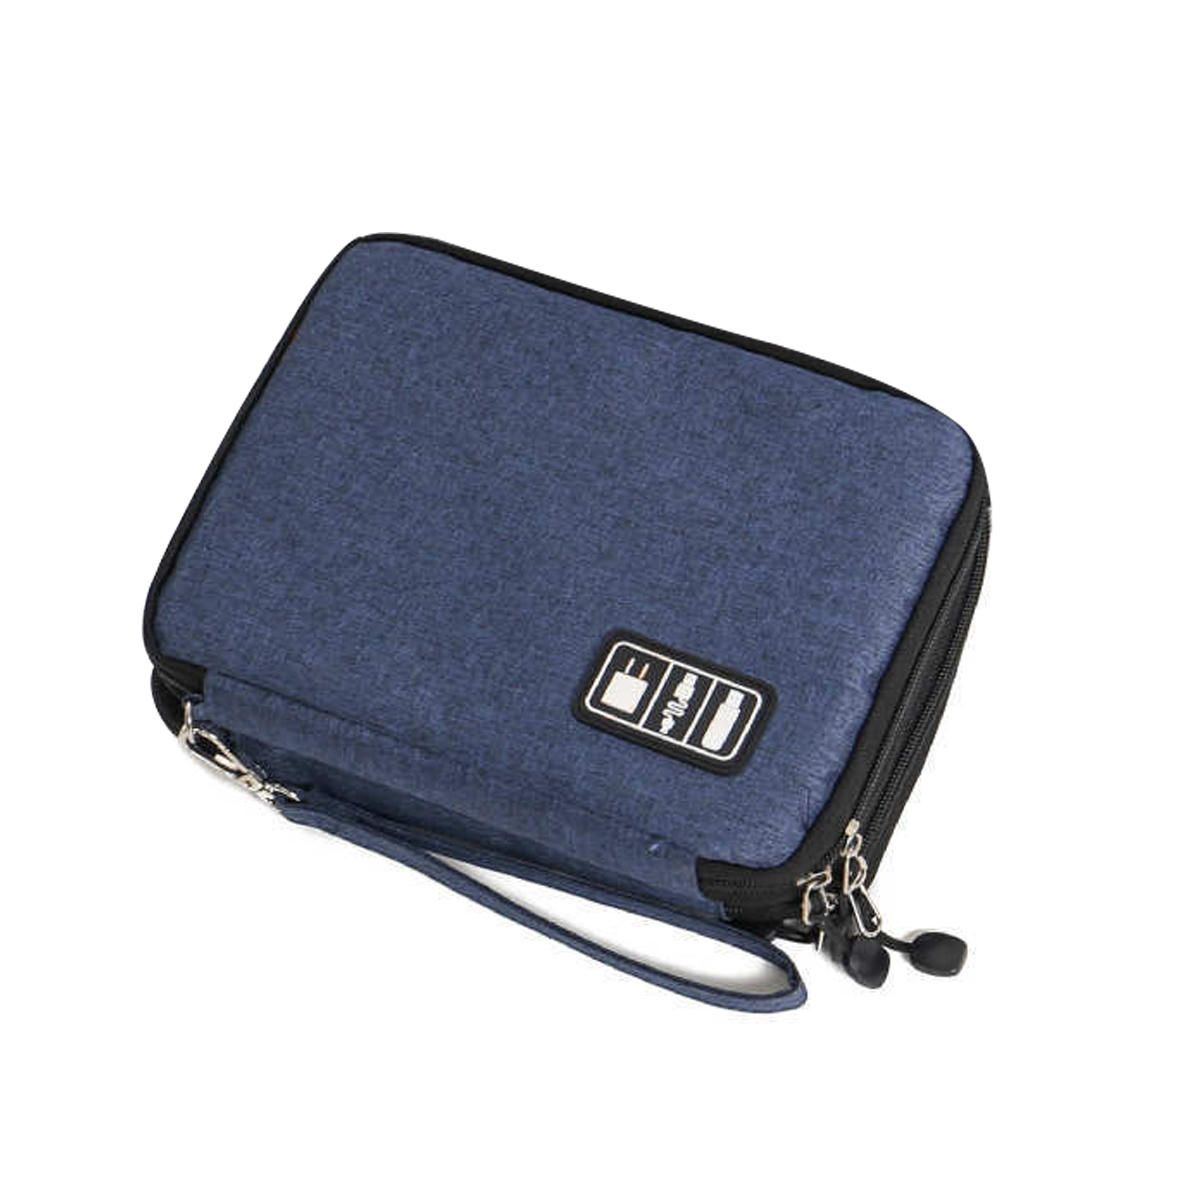 NFR US$13.98 Outdoor Travel Portable Digital Storage Bag Waterproof Multi-function Data Cable Accessories Organizer Pouch